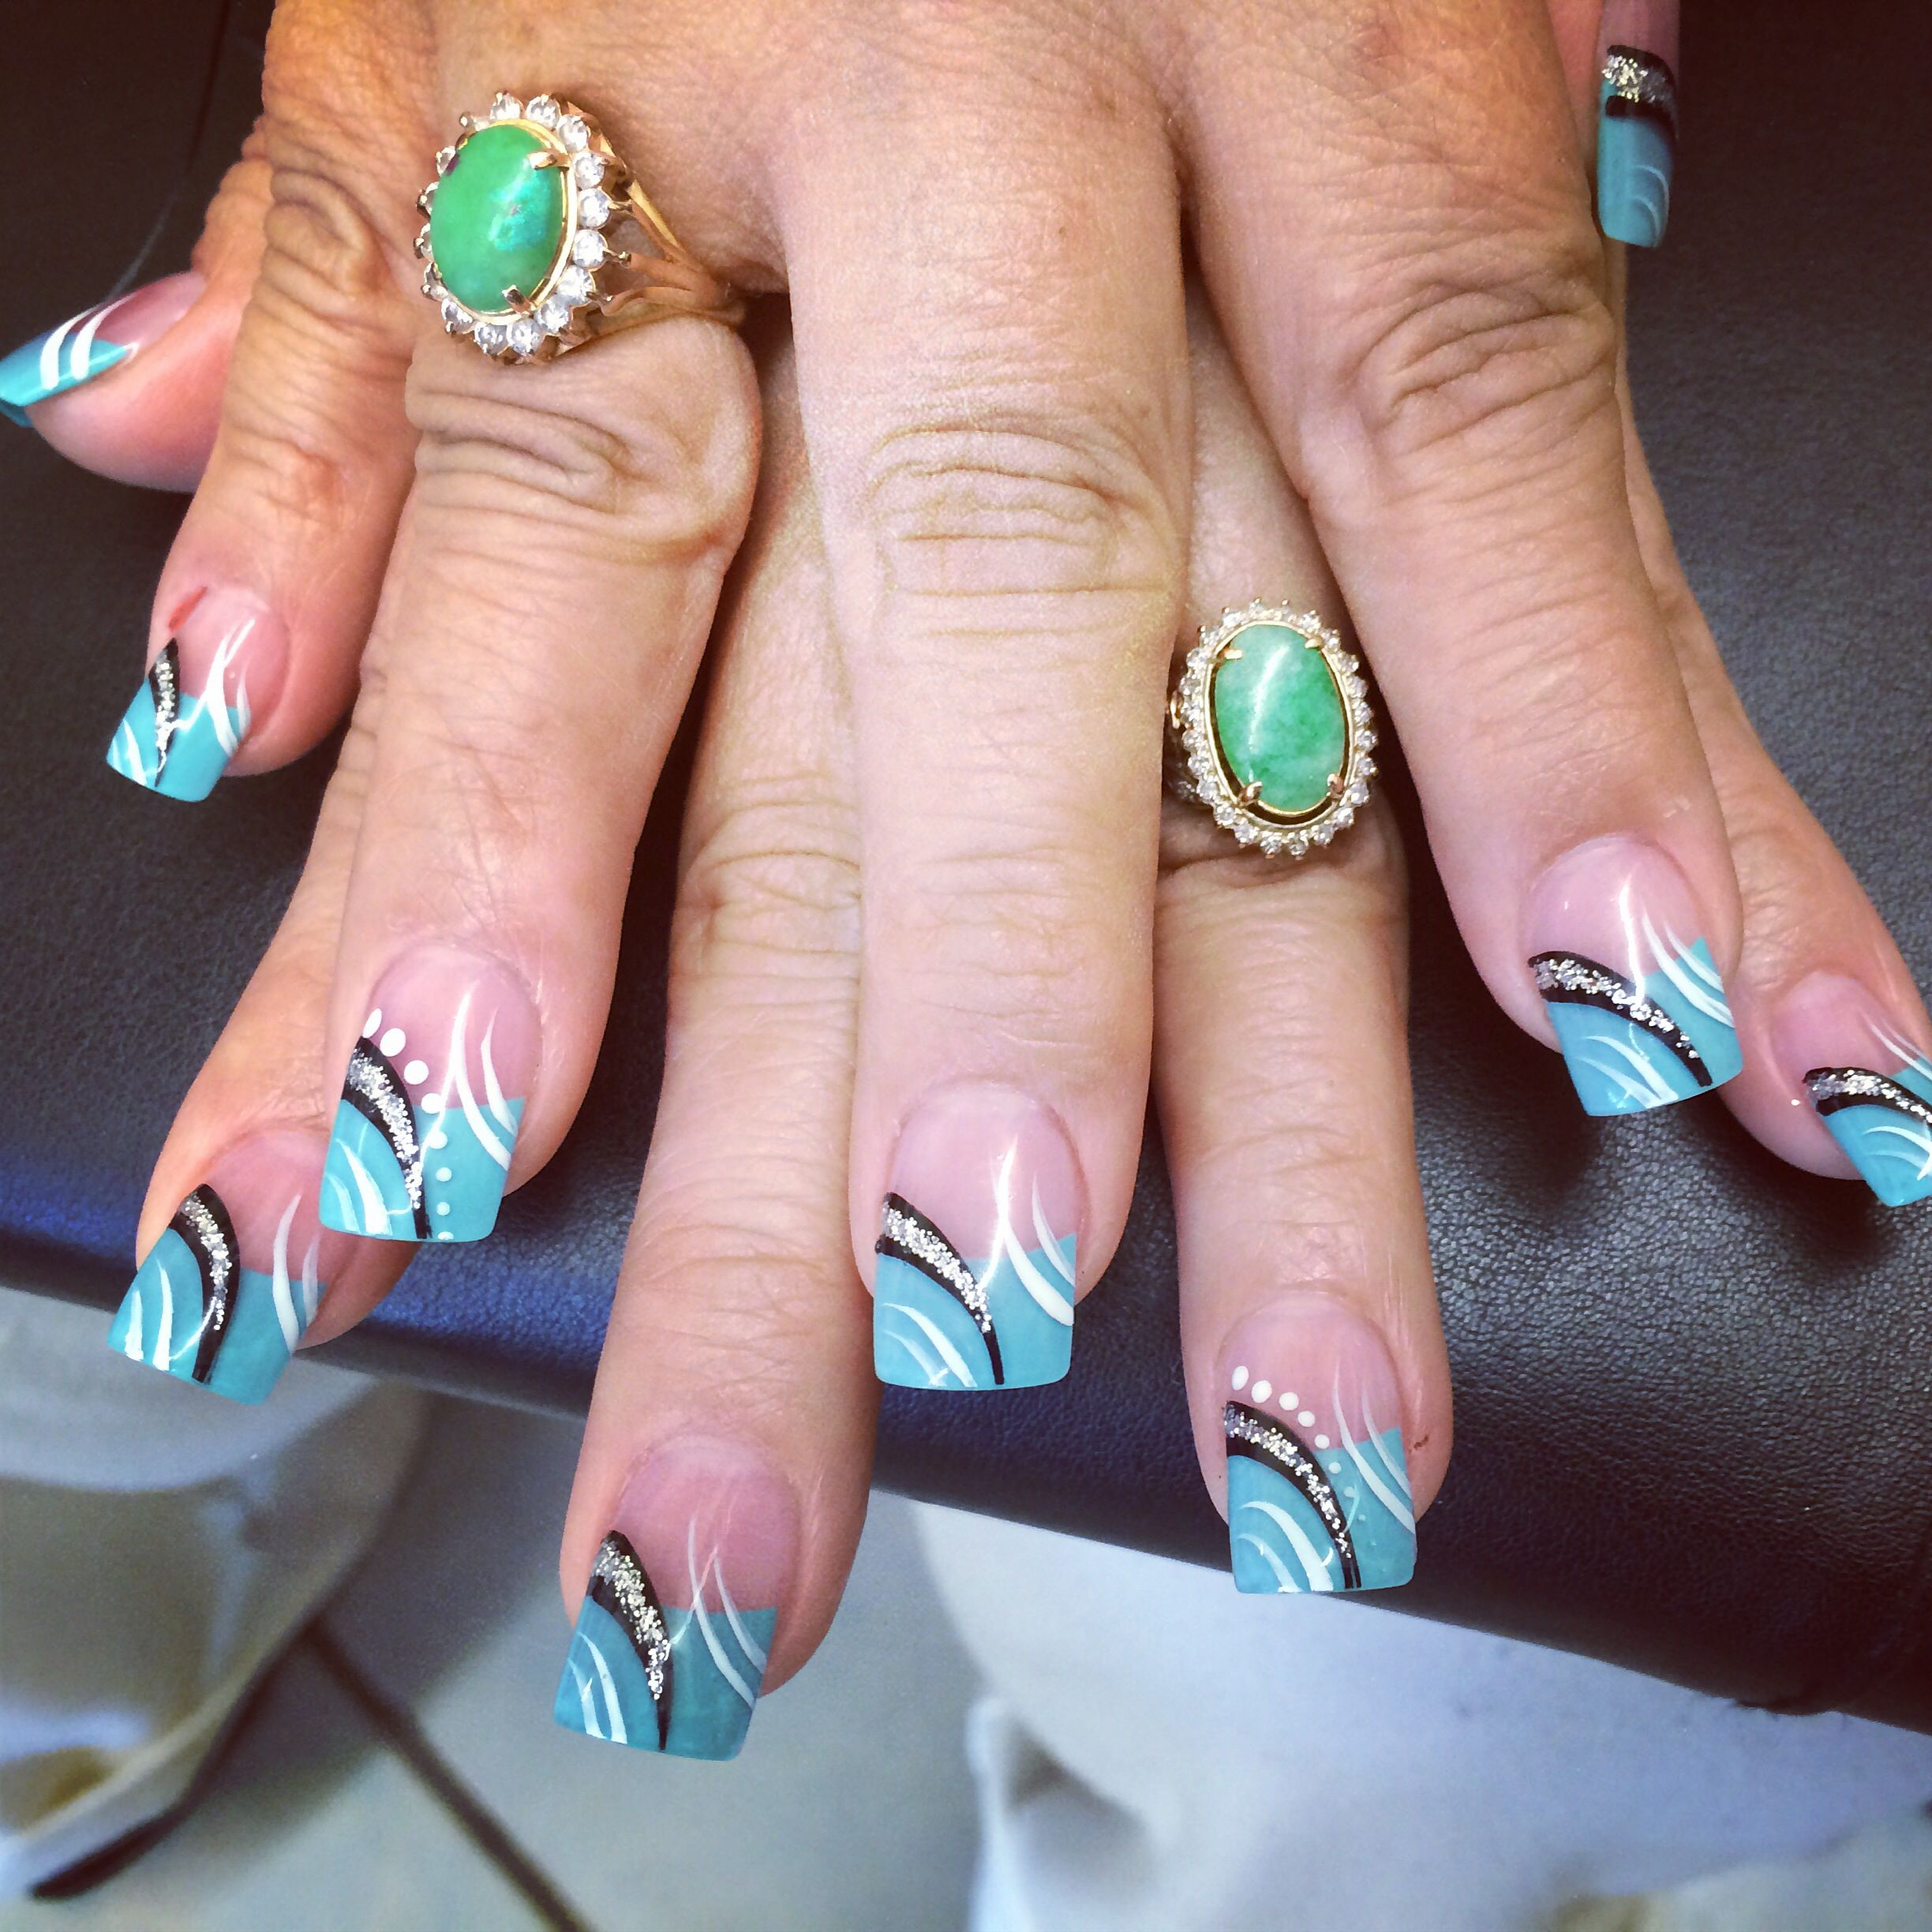 Solar Nails With Teal Blue Tips And Nail Art Designs